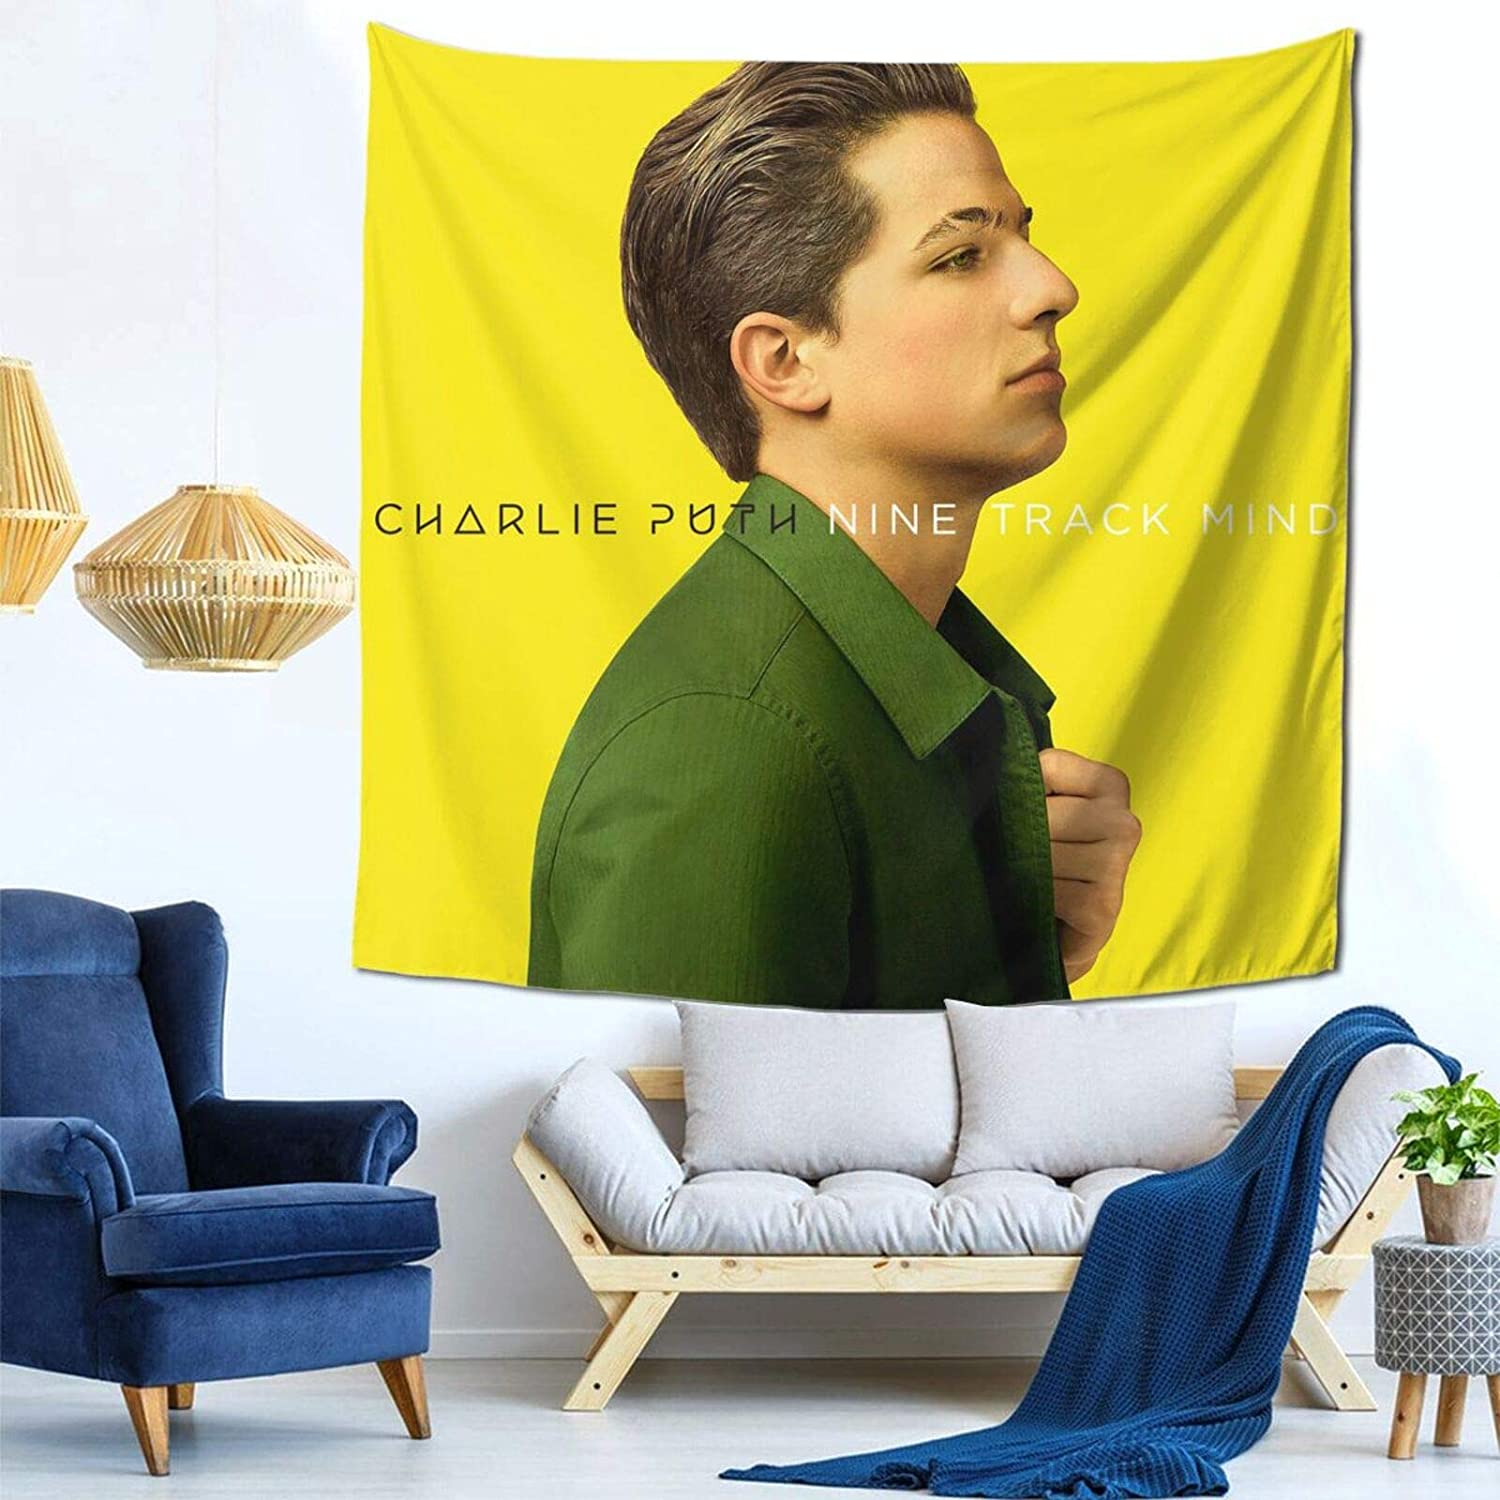 Charlie Puth Nine Track Mind Tapestry Mural Wall Hanging Decor for Bedroom Living Room Dormitory Apartment Tapestry 59 X 59 Inch